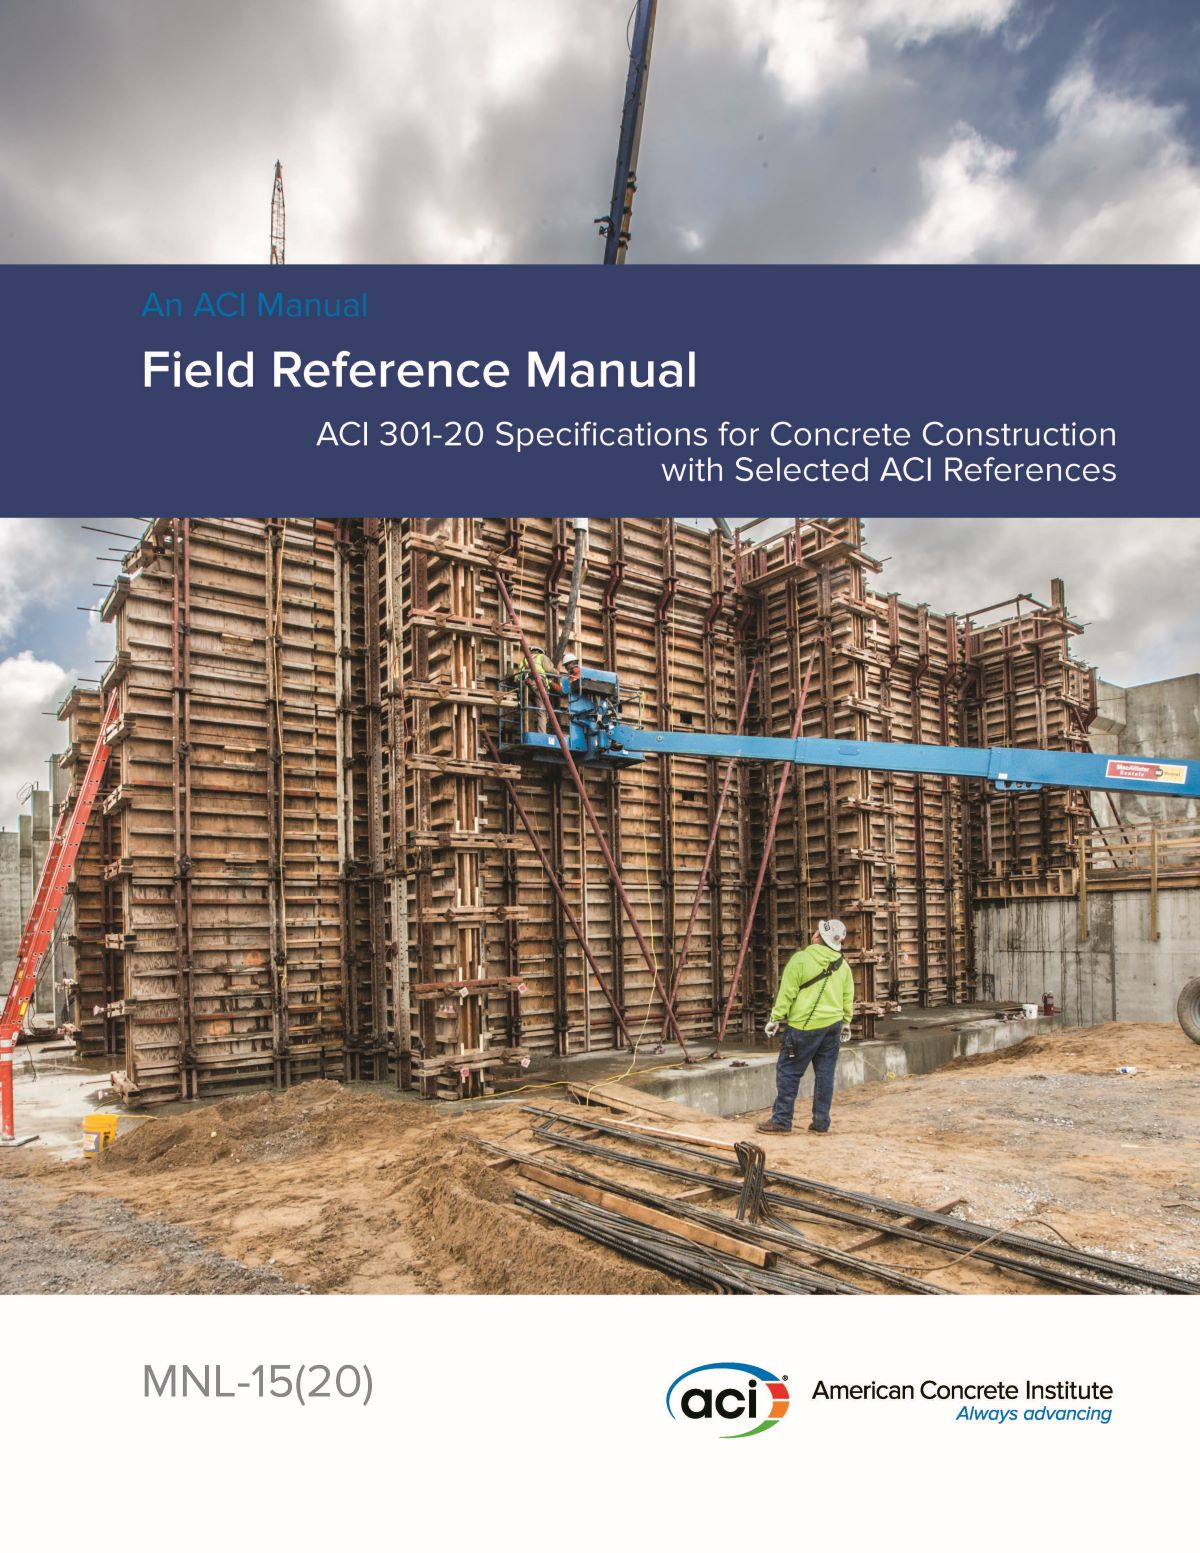 NEW ACI SPECIFICATIONS FOR CONCRETE CONSTRUCTION